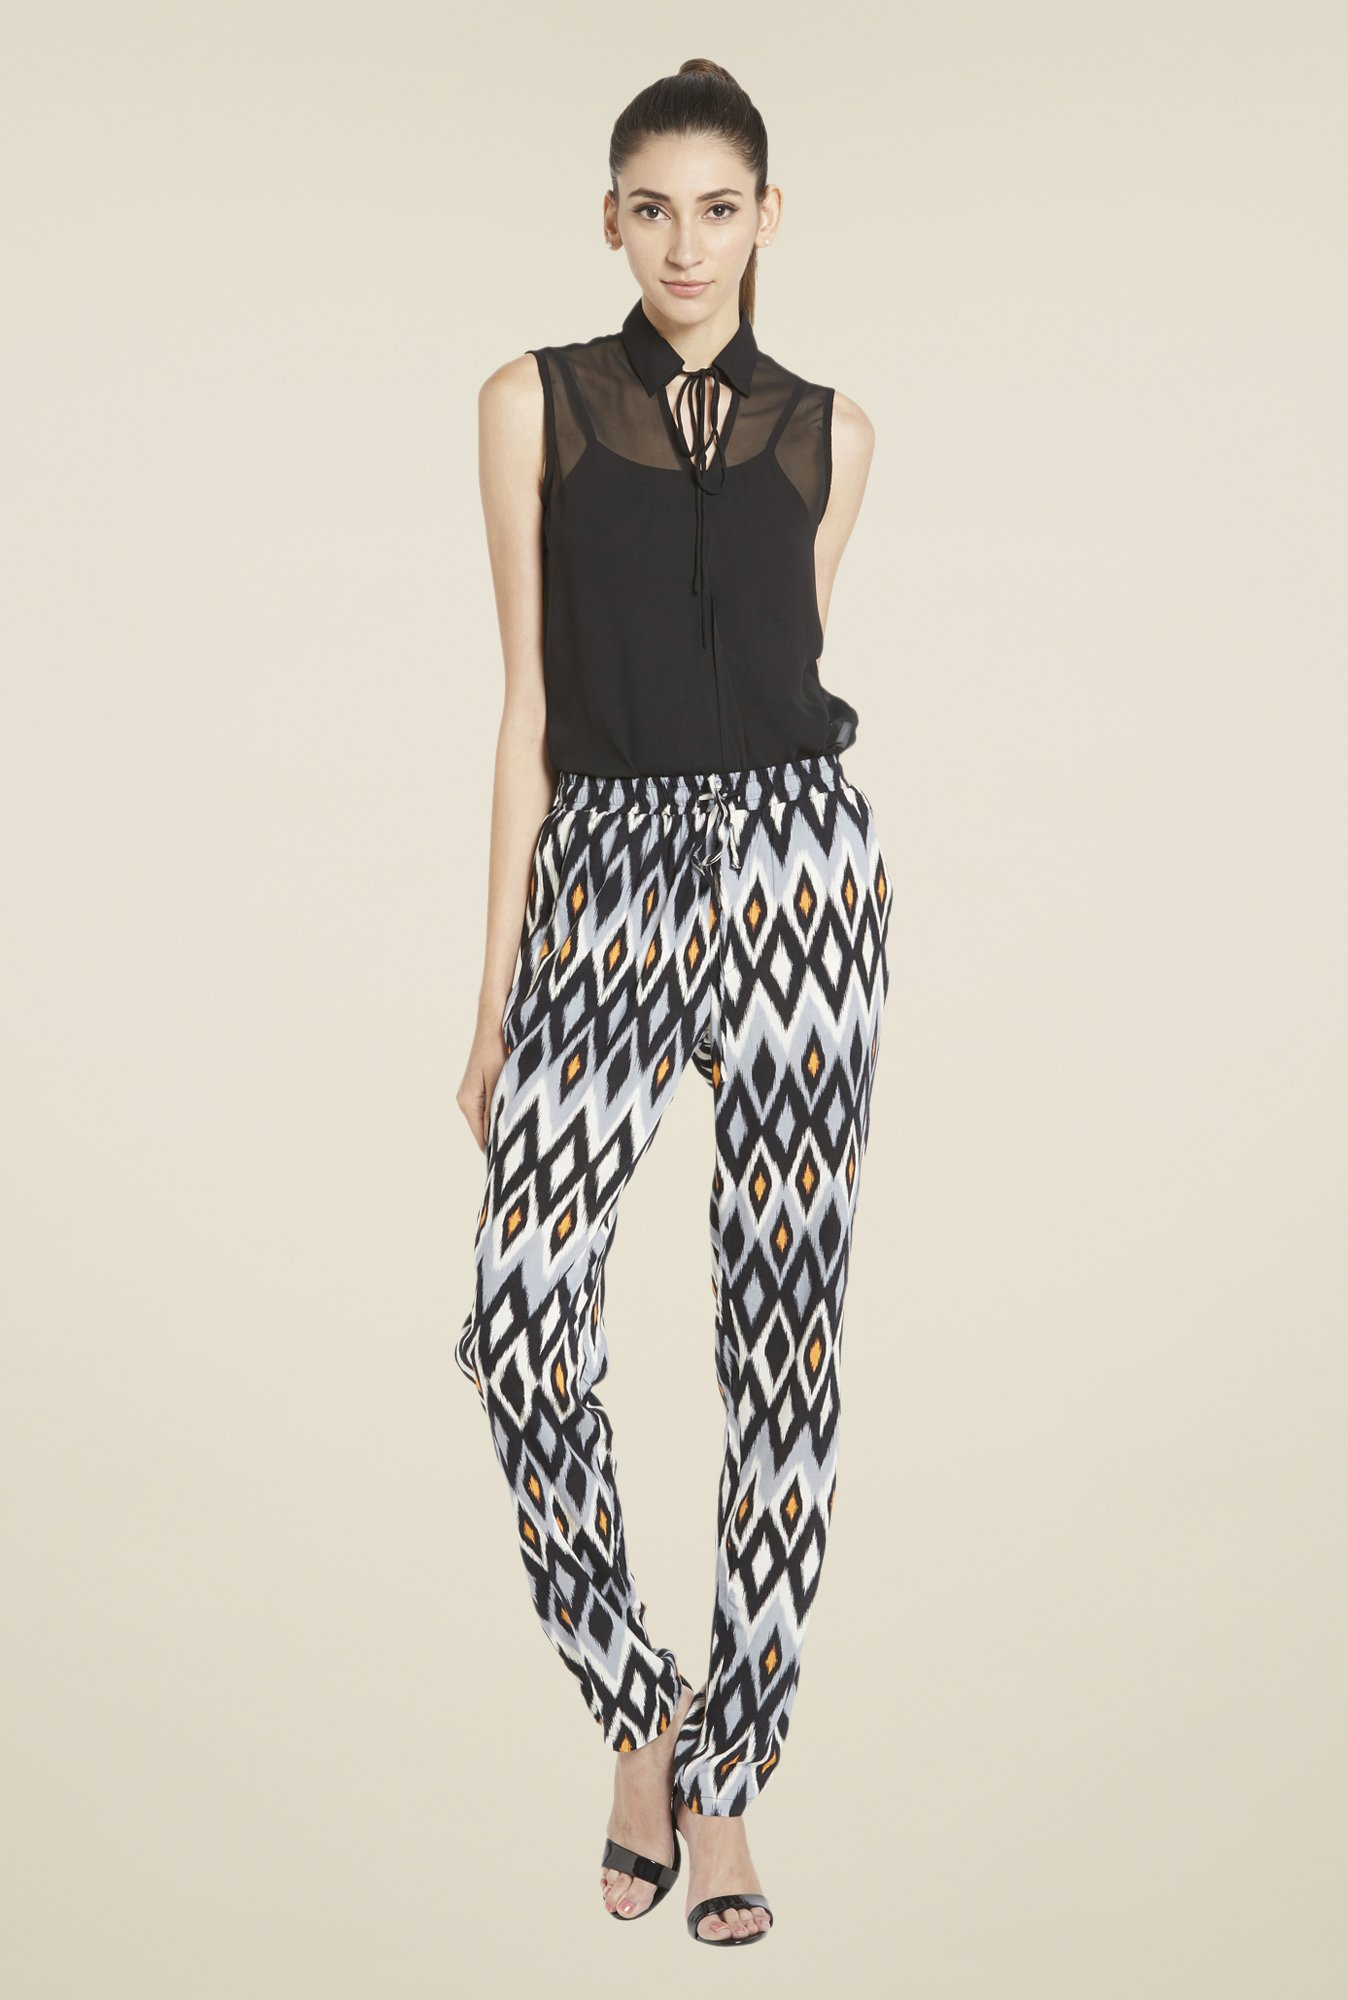 Globus Black & Grey Printed Trouser